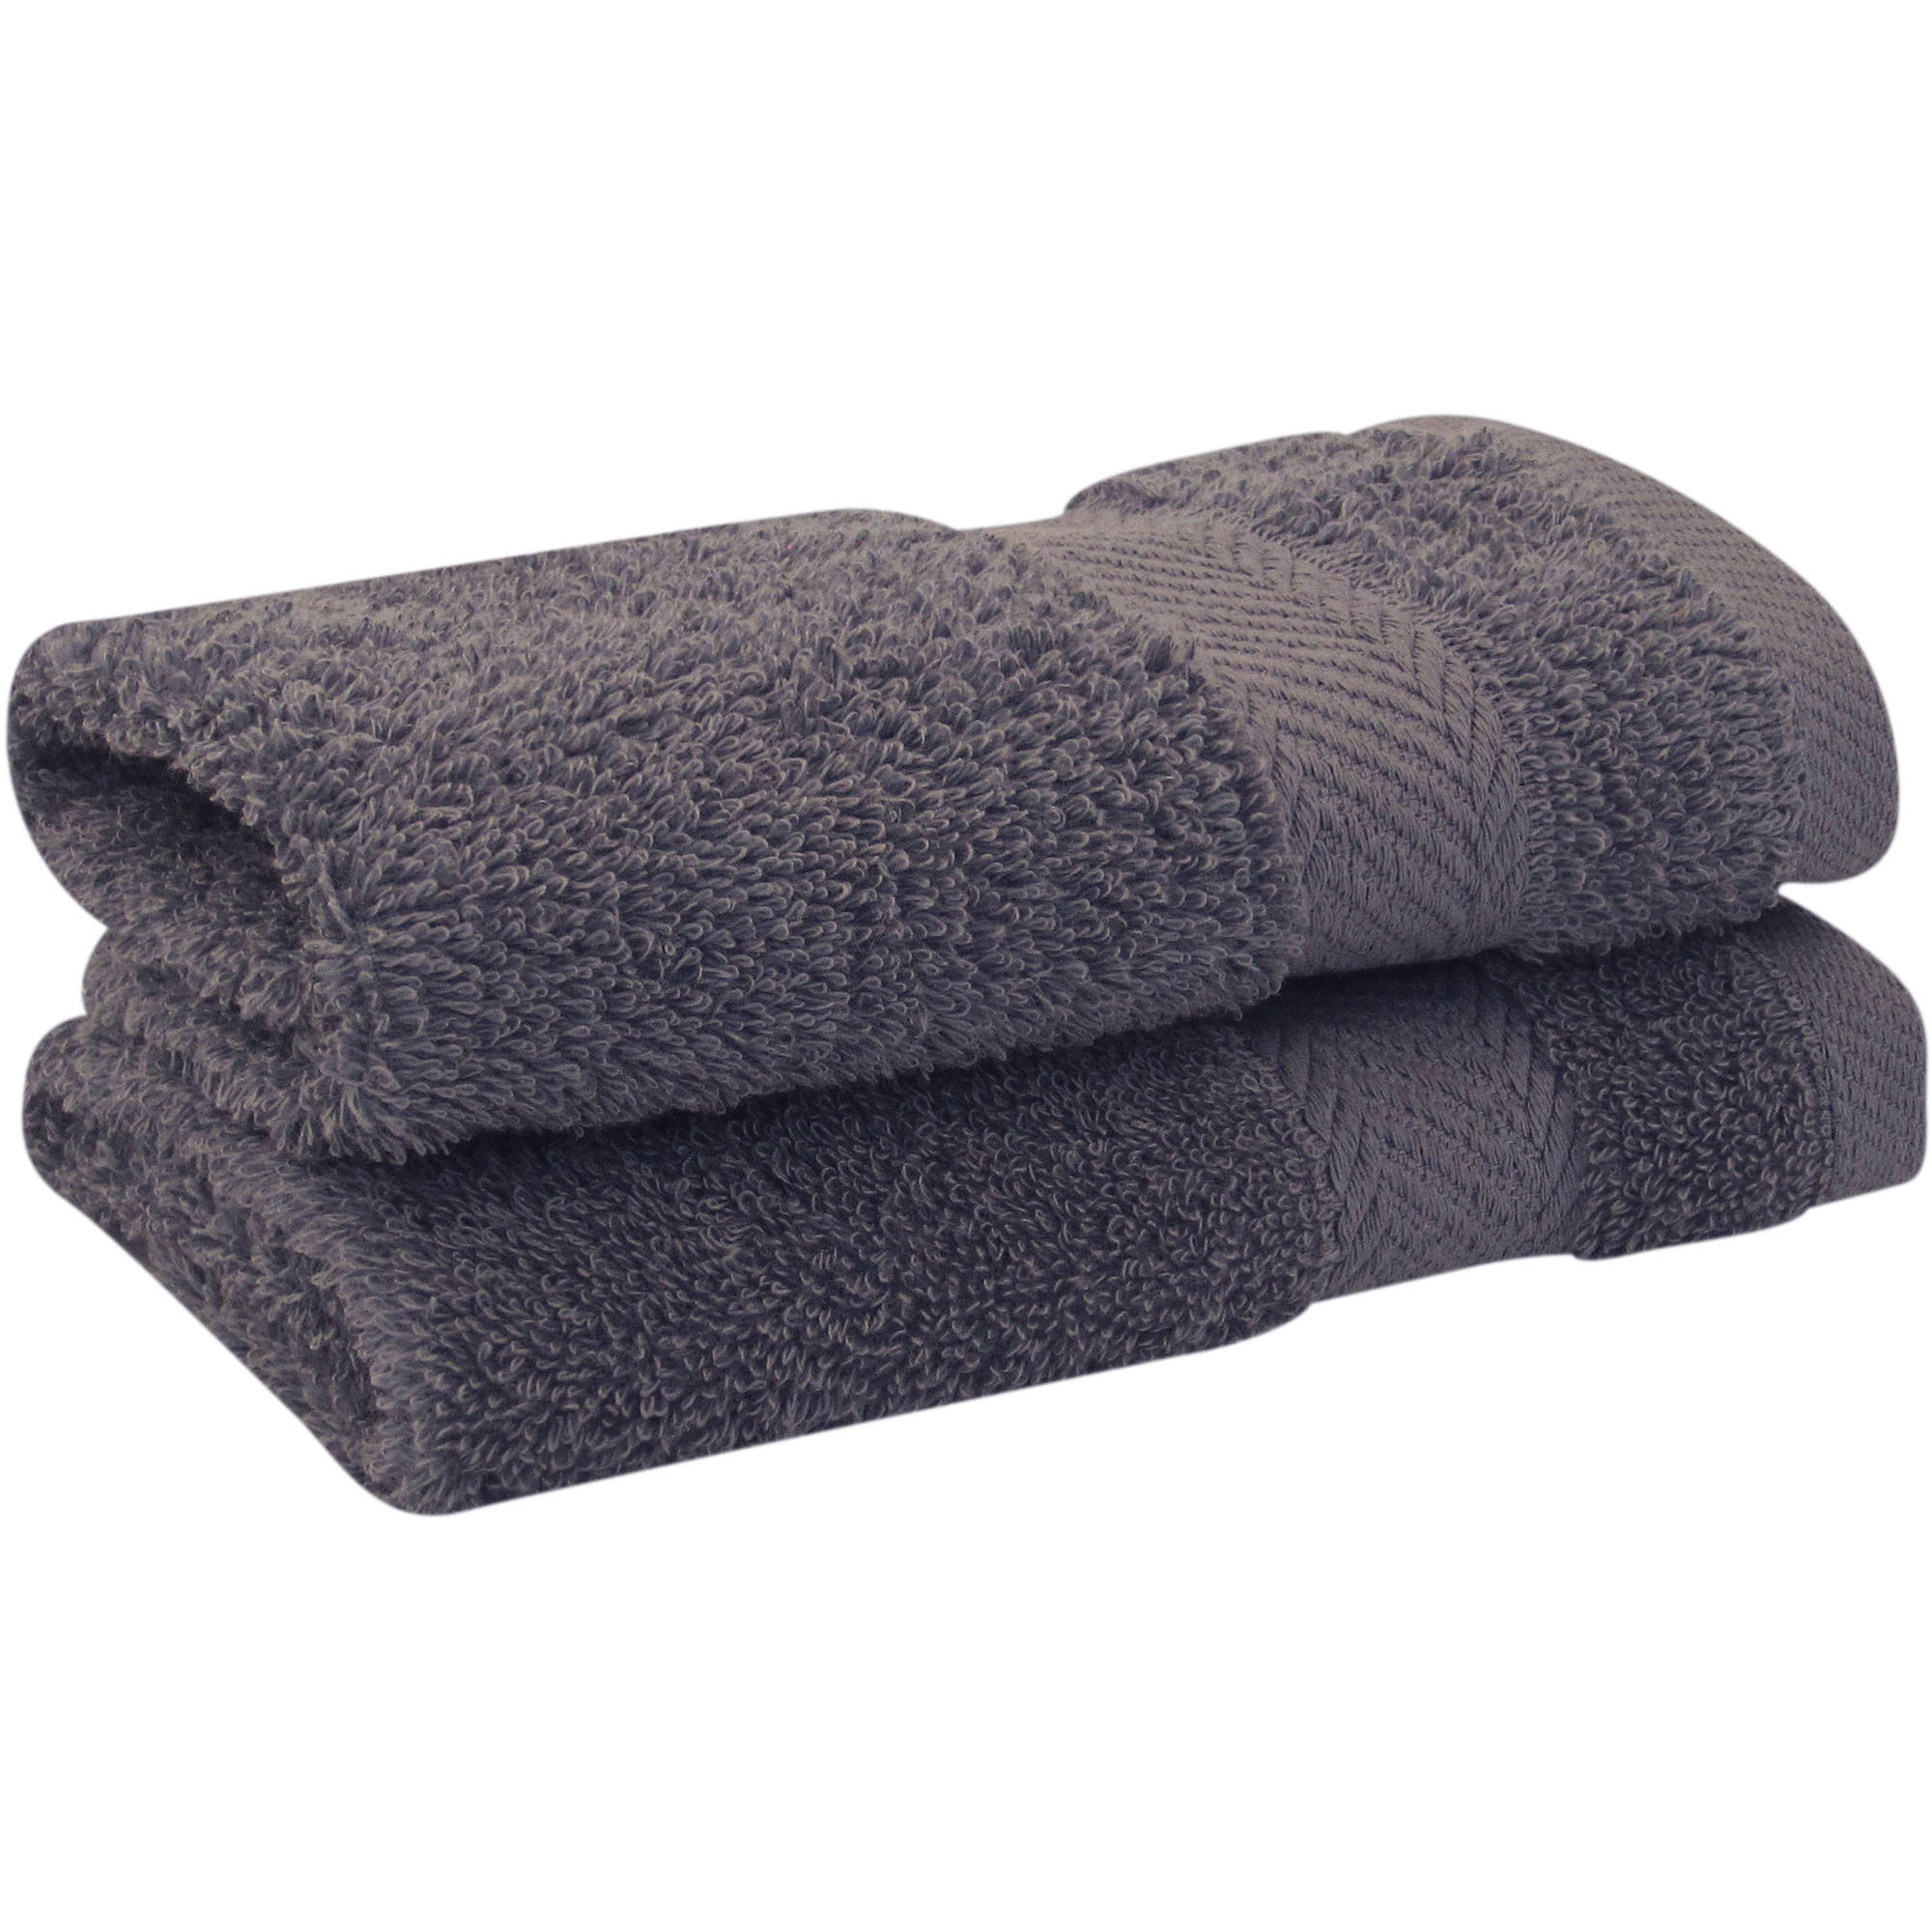 Made Here Coronet Blue Towel, 2-Pack